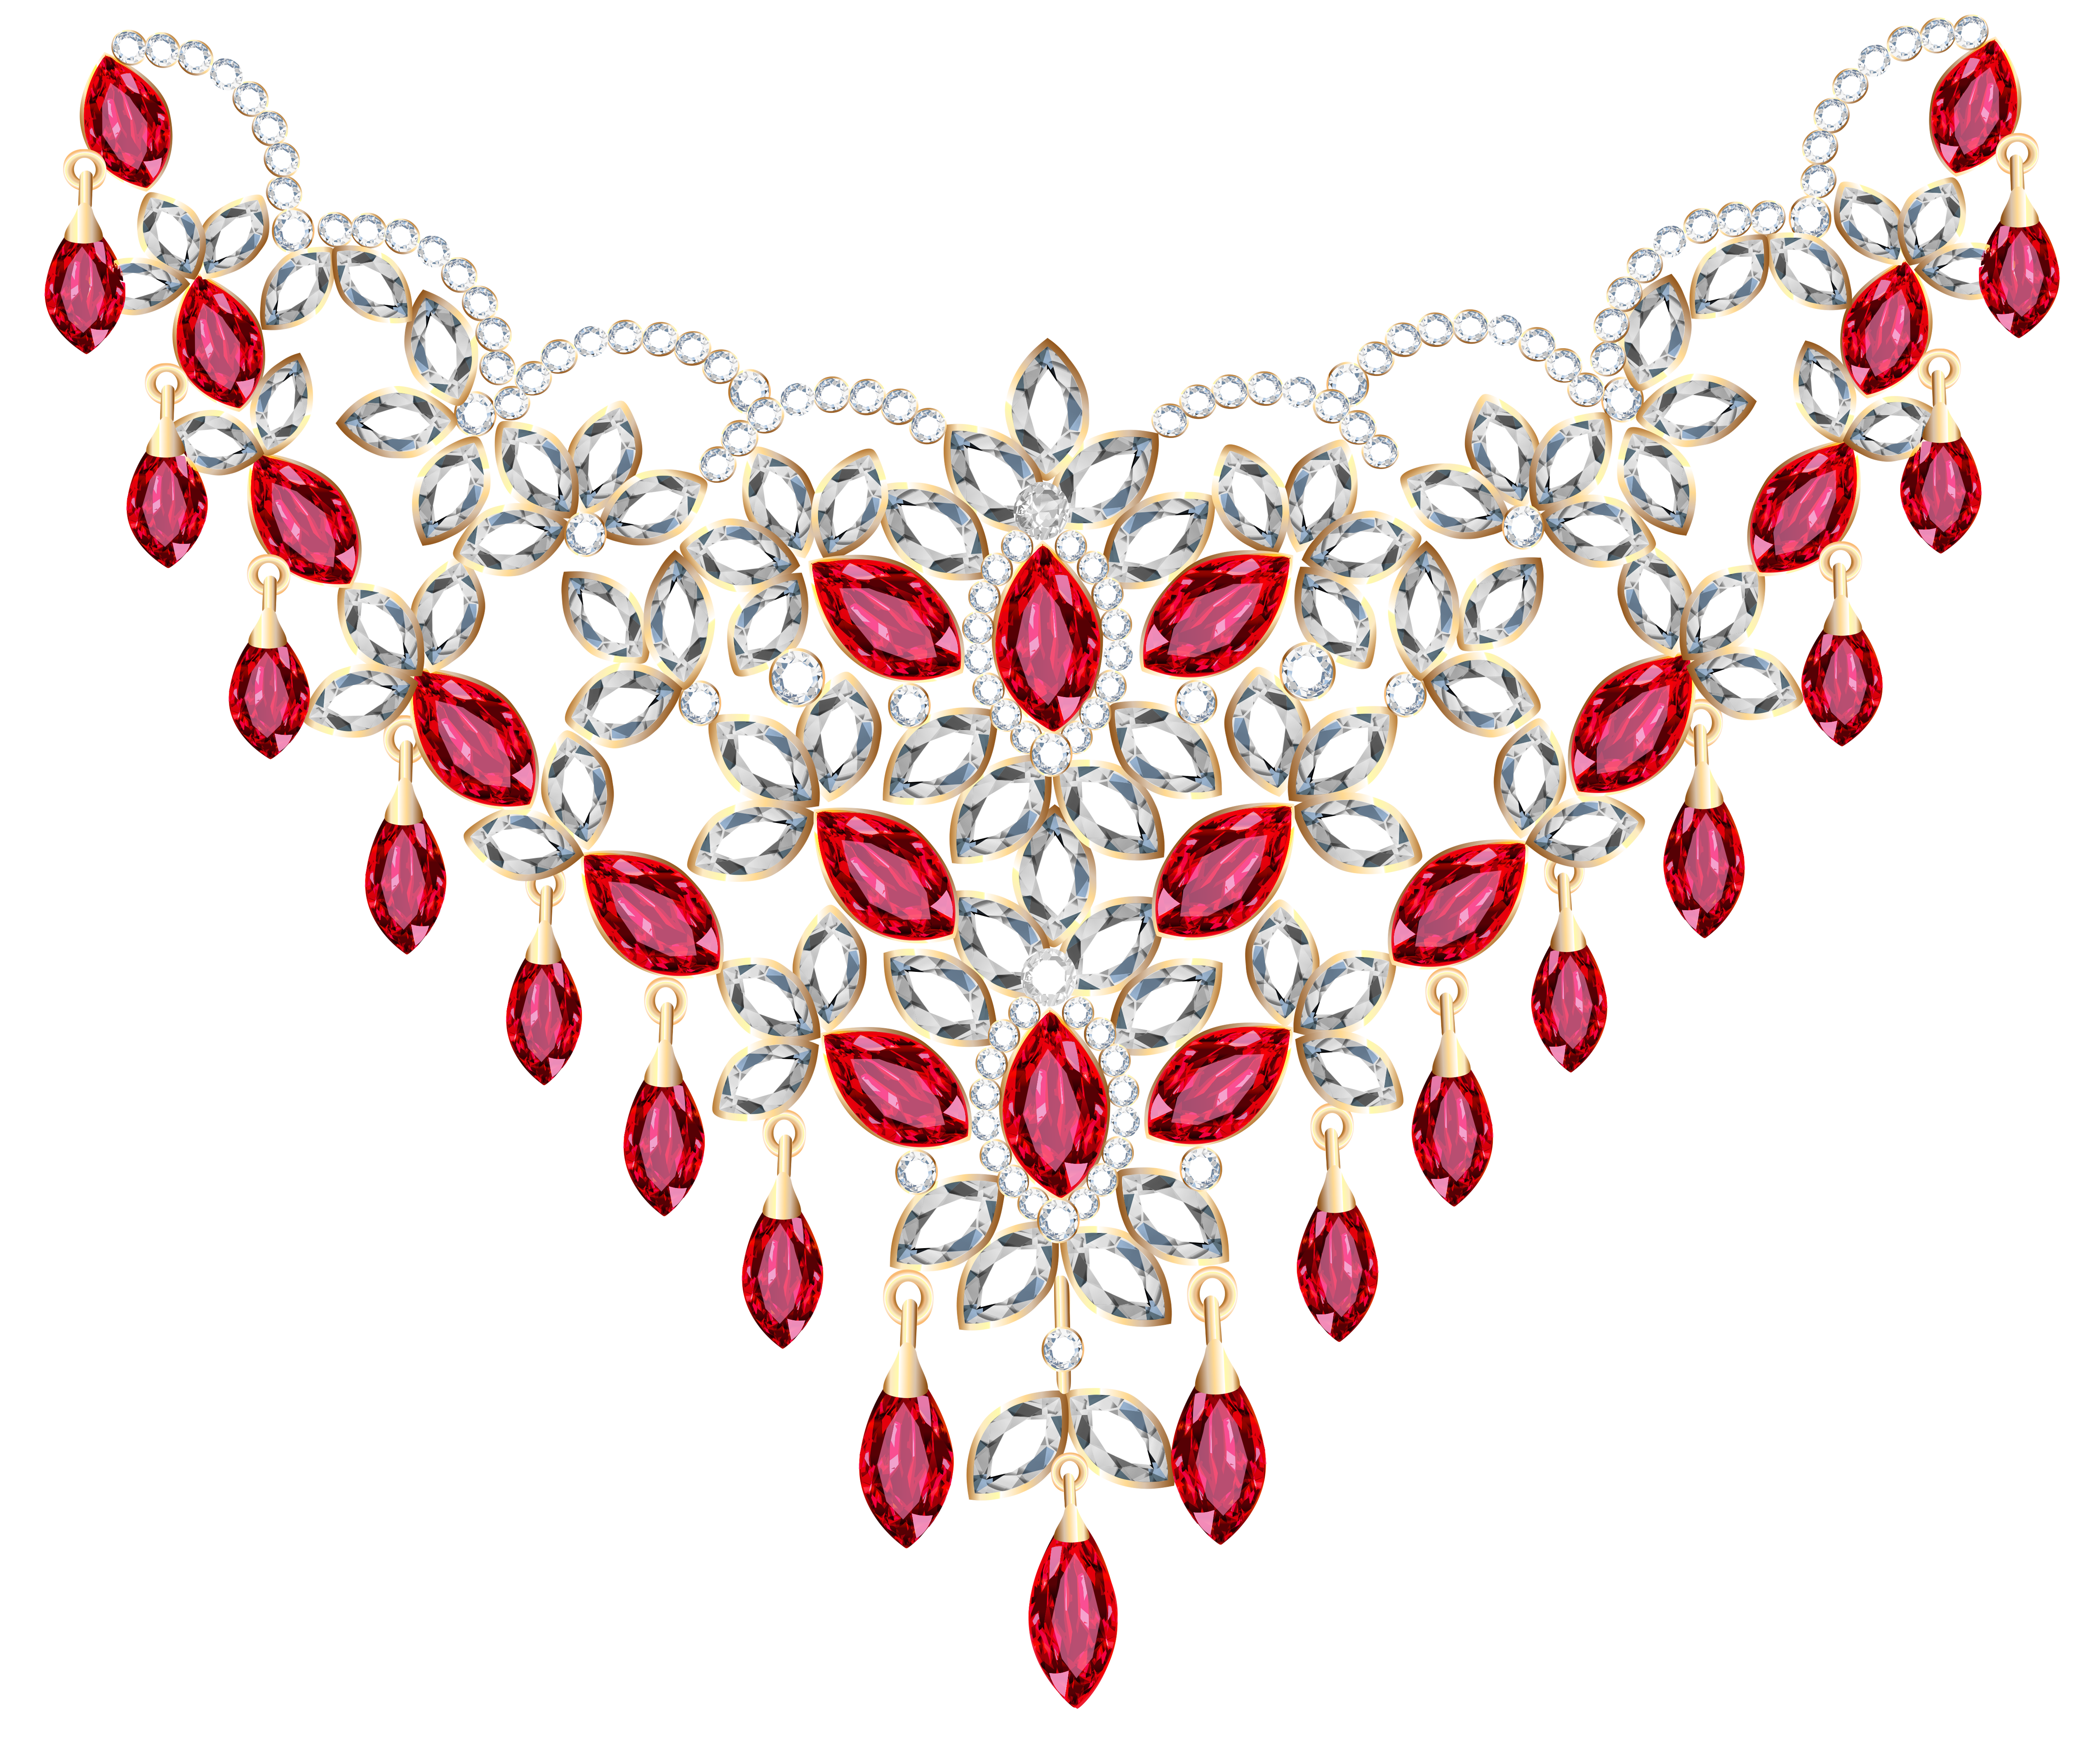 Necklace png transparent background. Diamond and ruby clipart